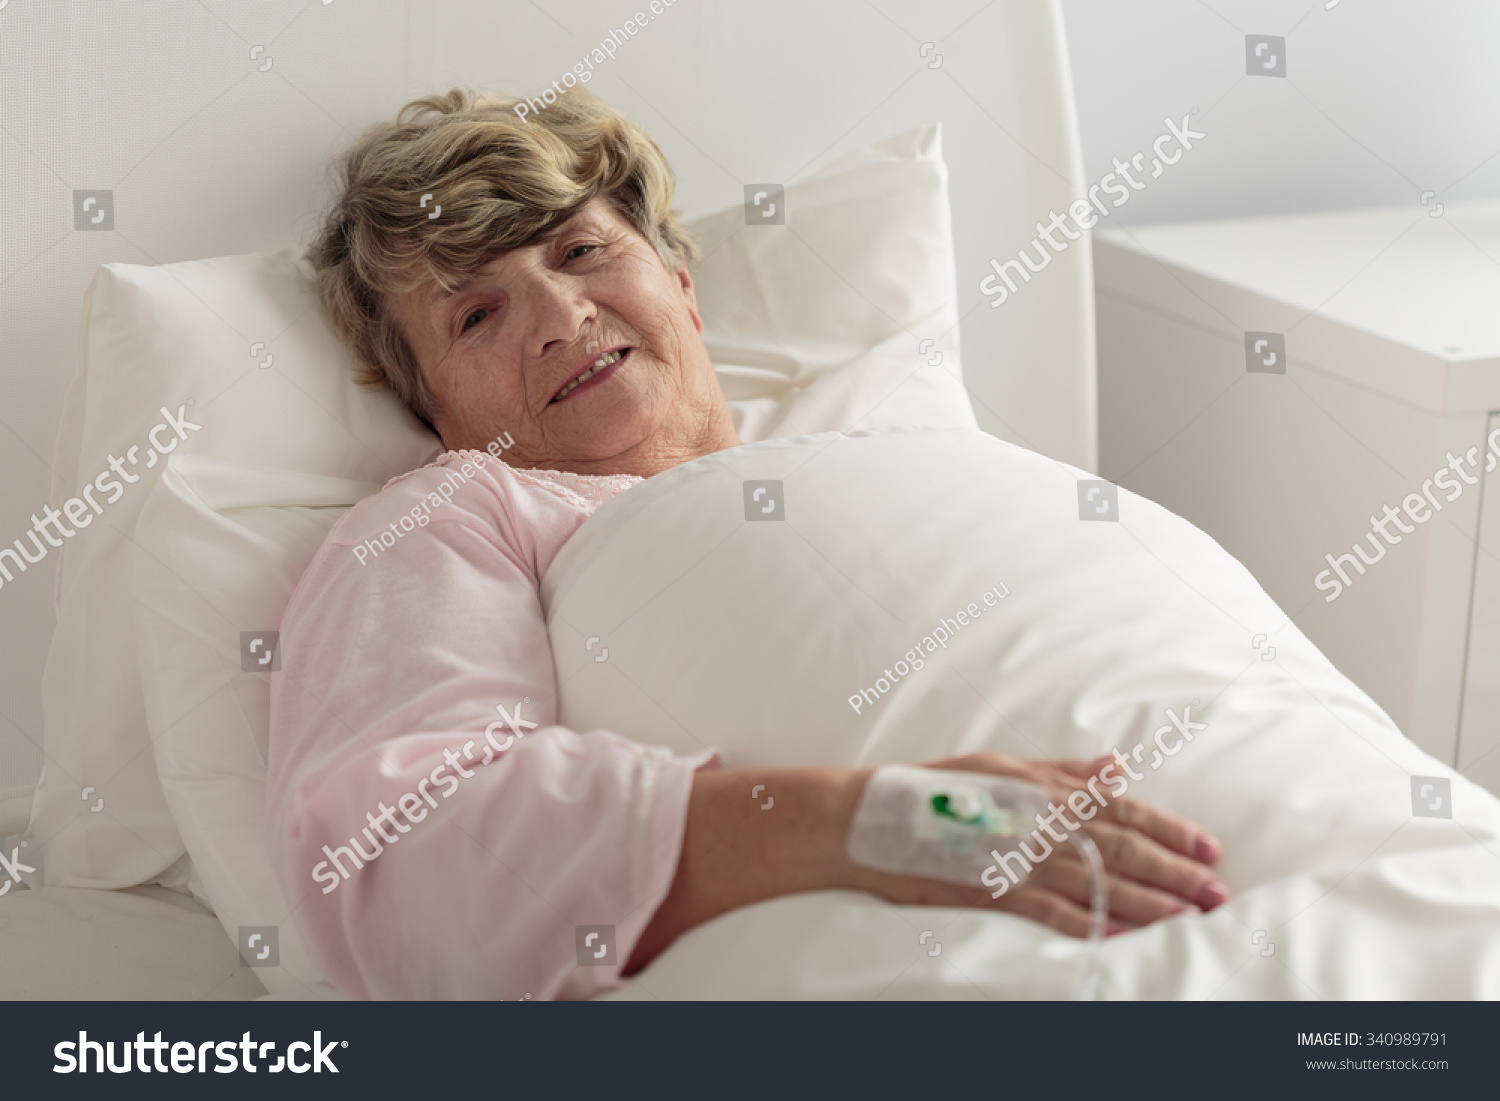 Sick In Hospital Bed Image of old sick woman lying in hospital bed ...